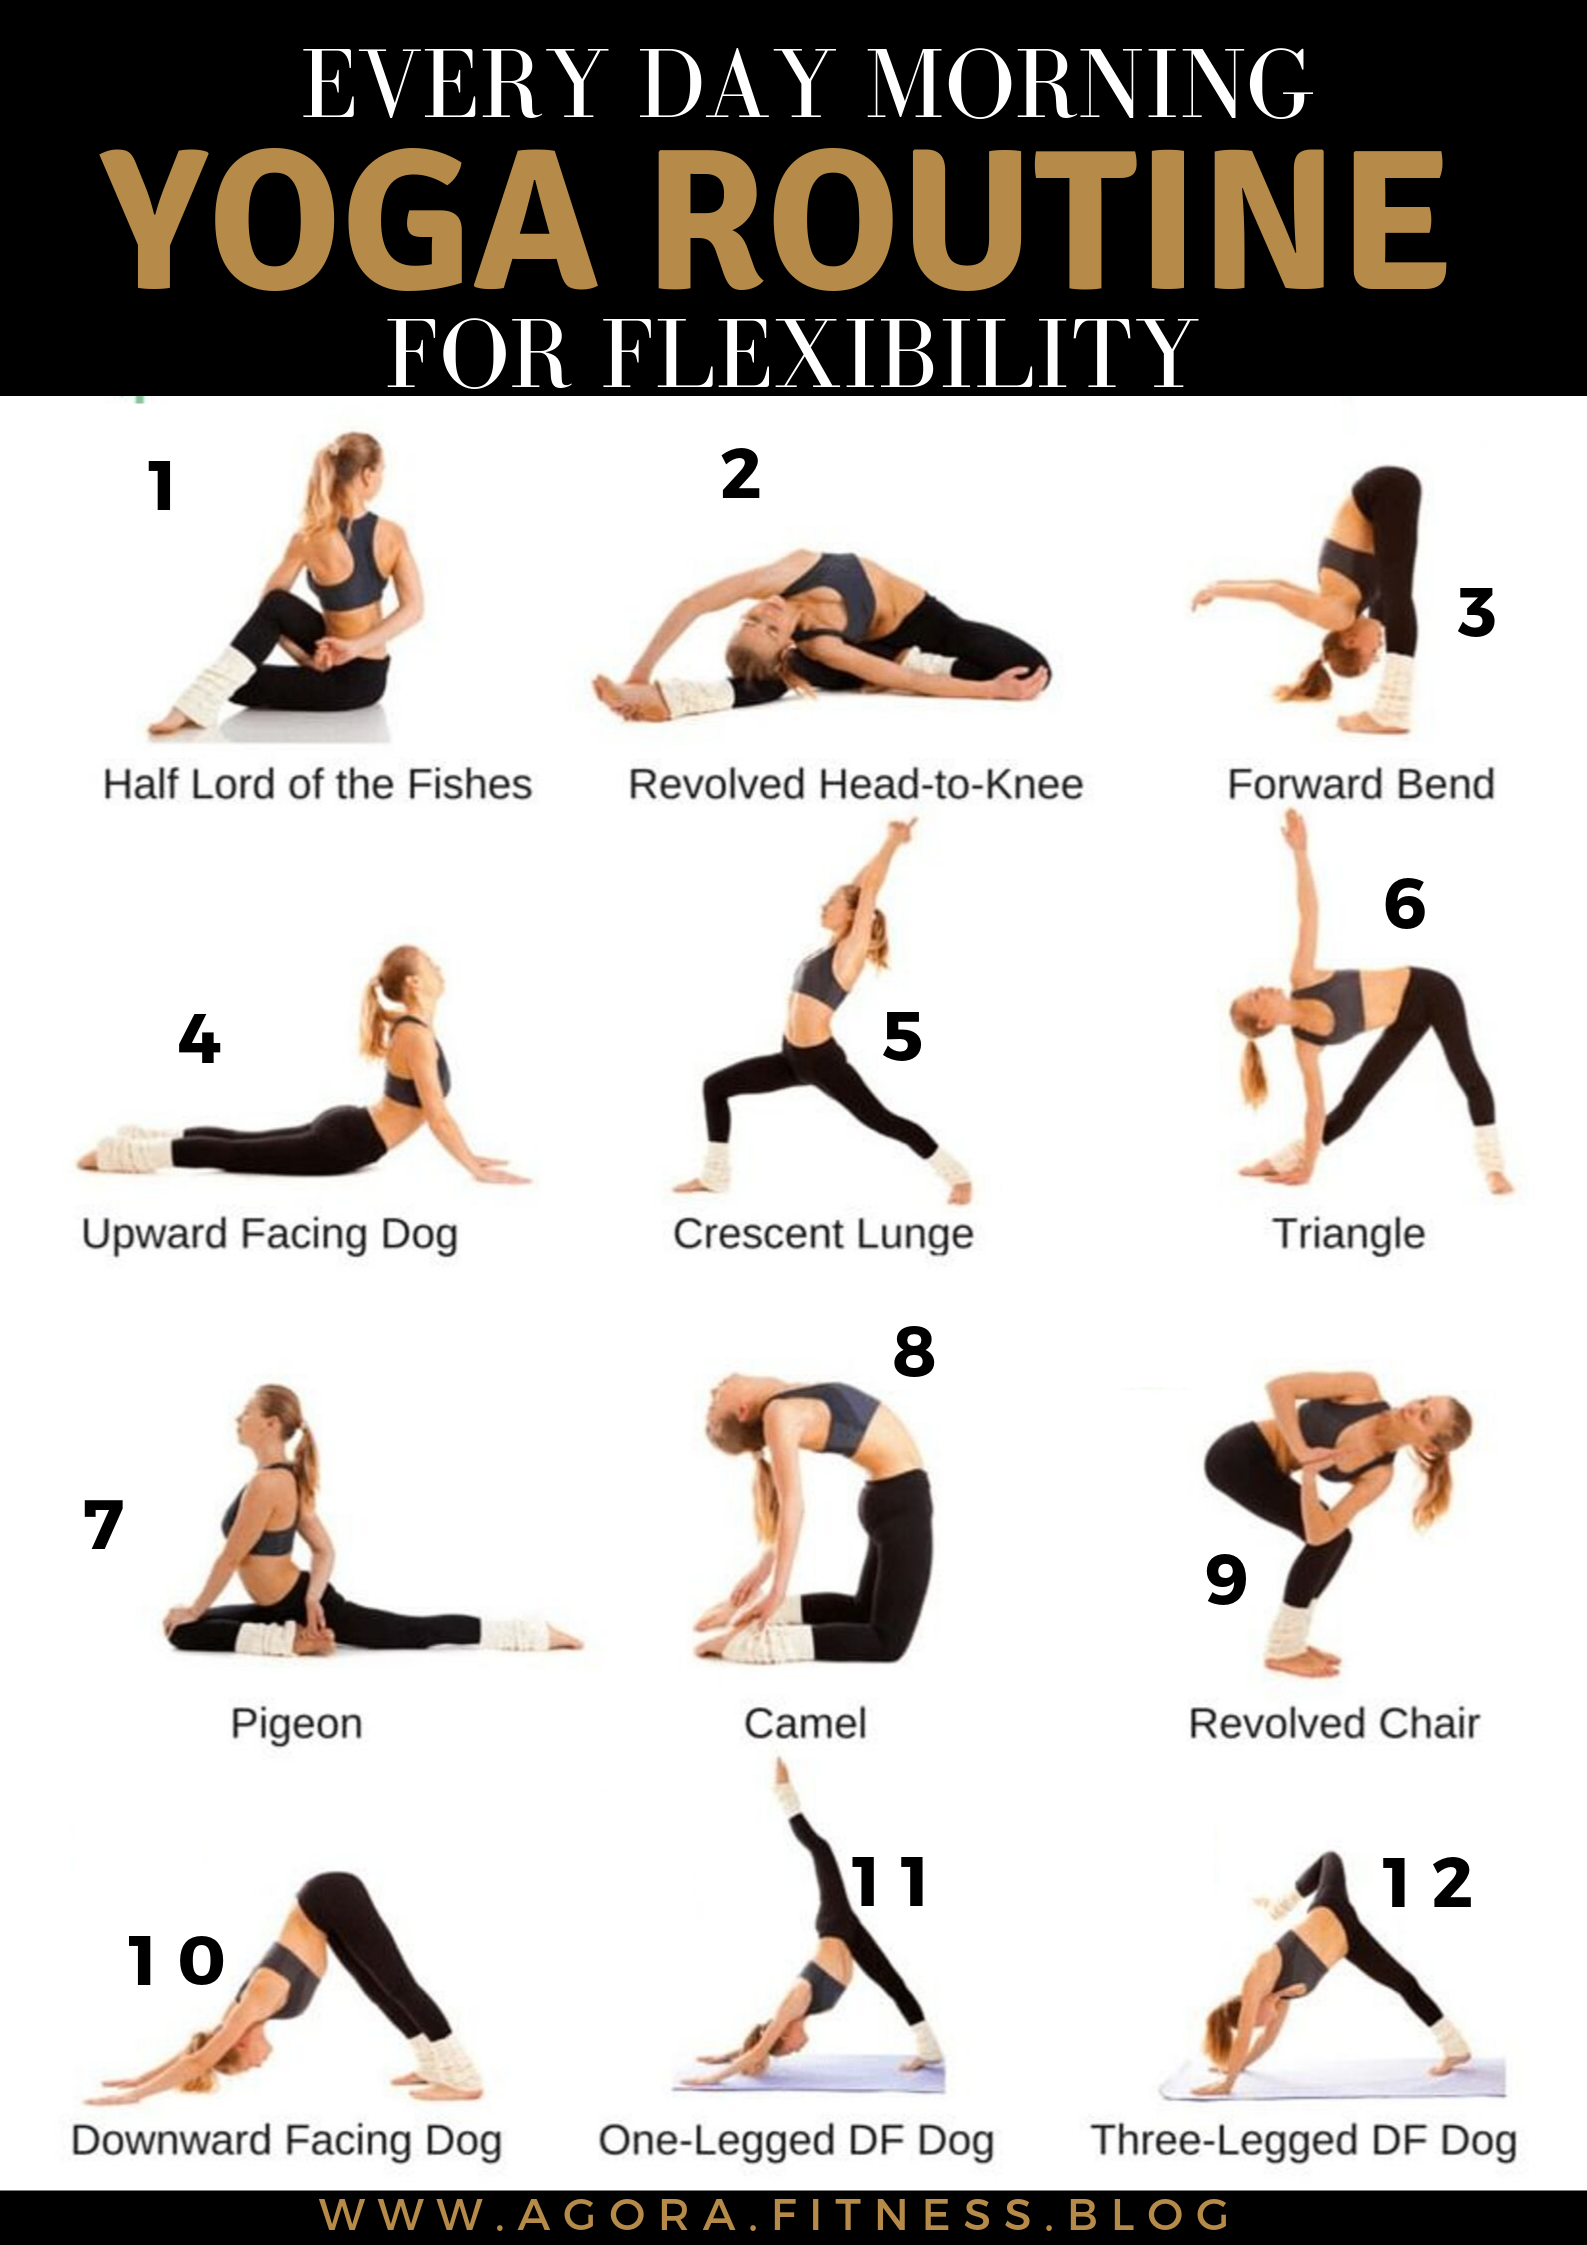 Every day morning yoga routine for flexibility